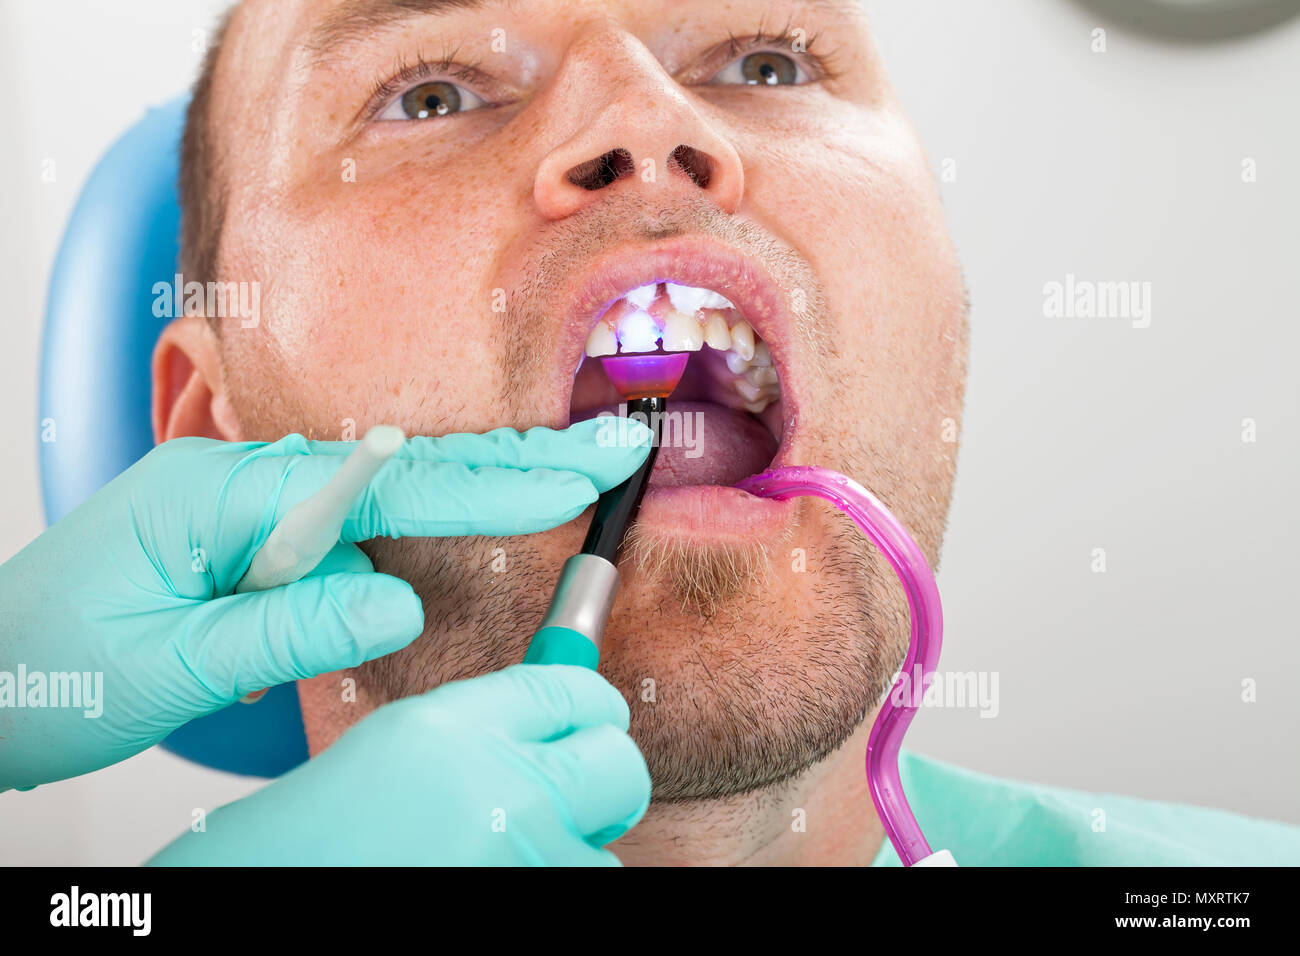 Dental treatment with polymerization lamp in oral cavity. Male patient close up - Stock Image